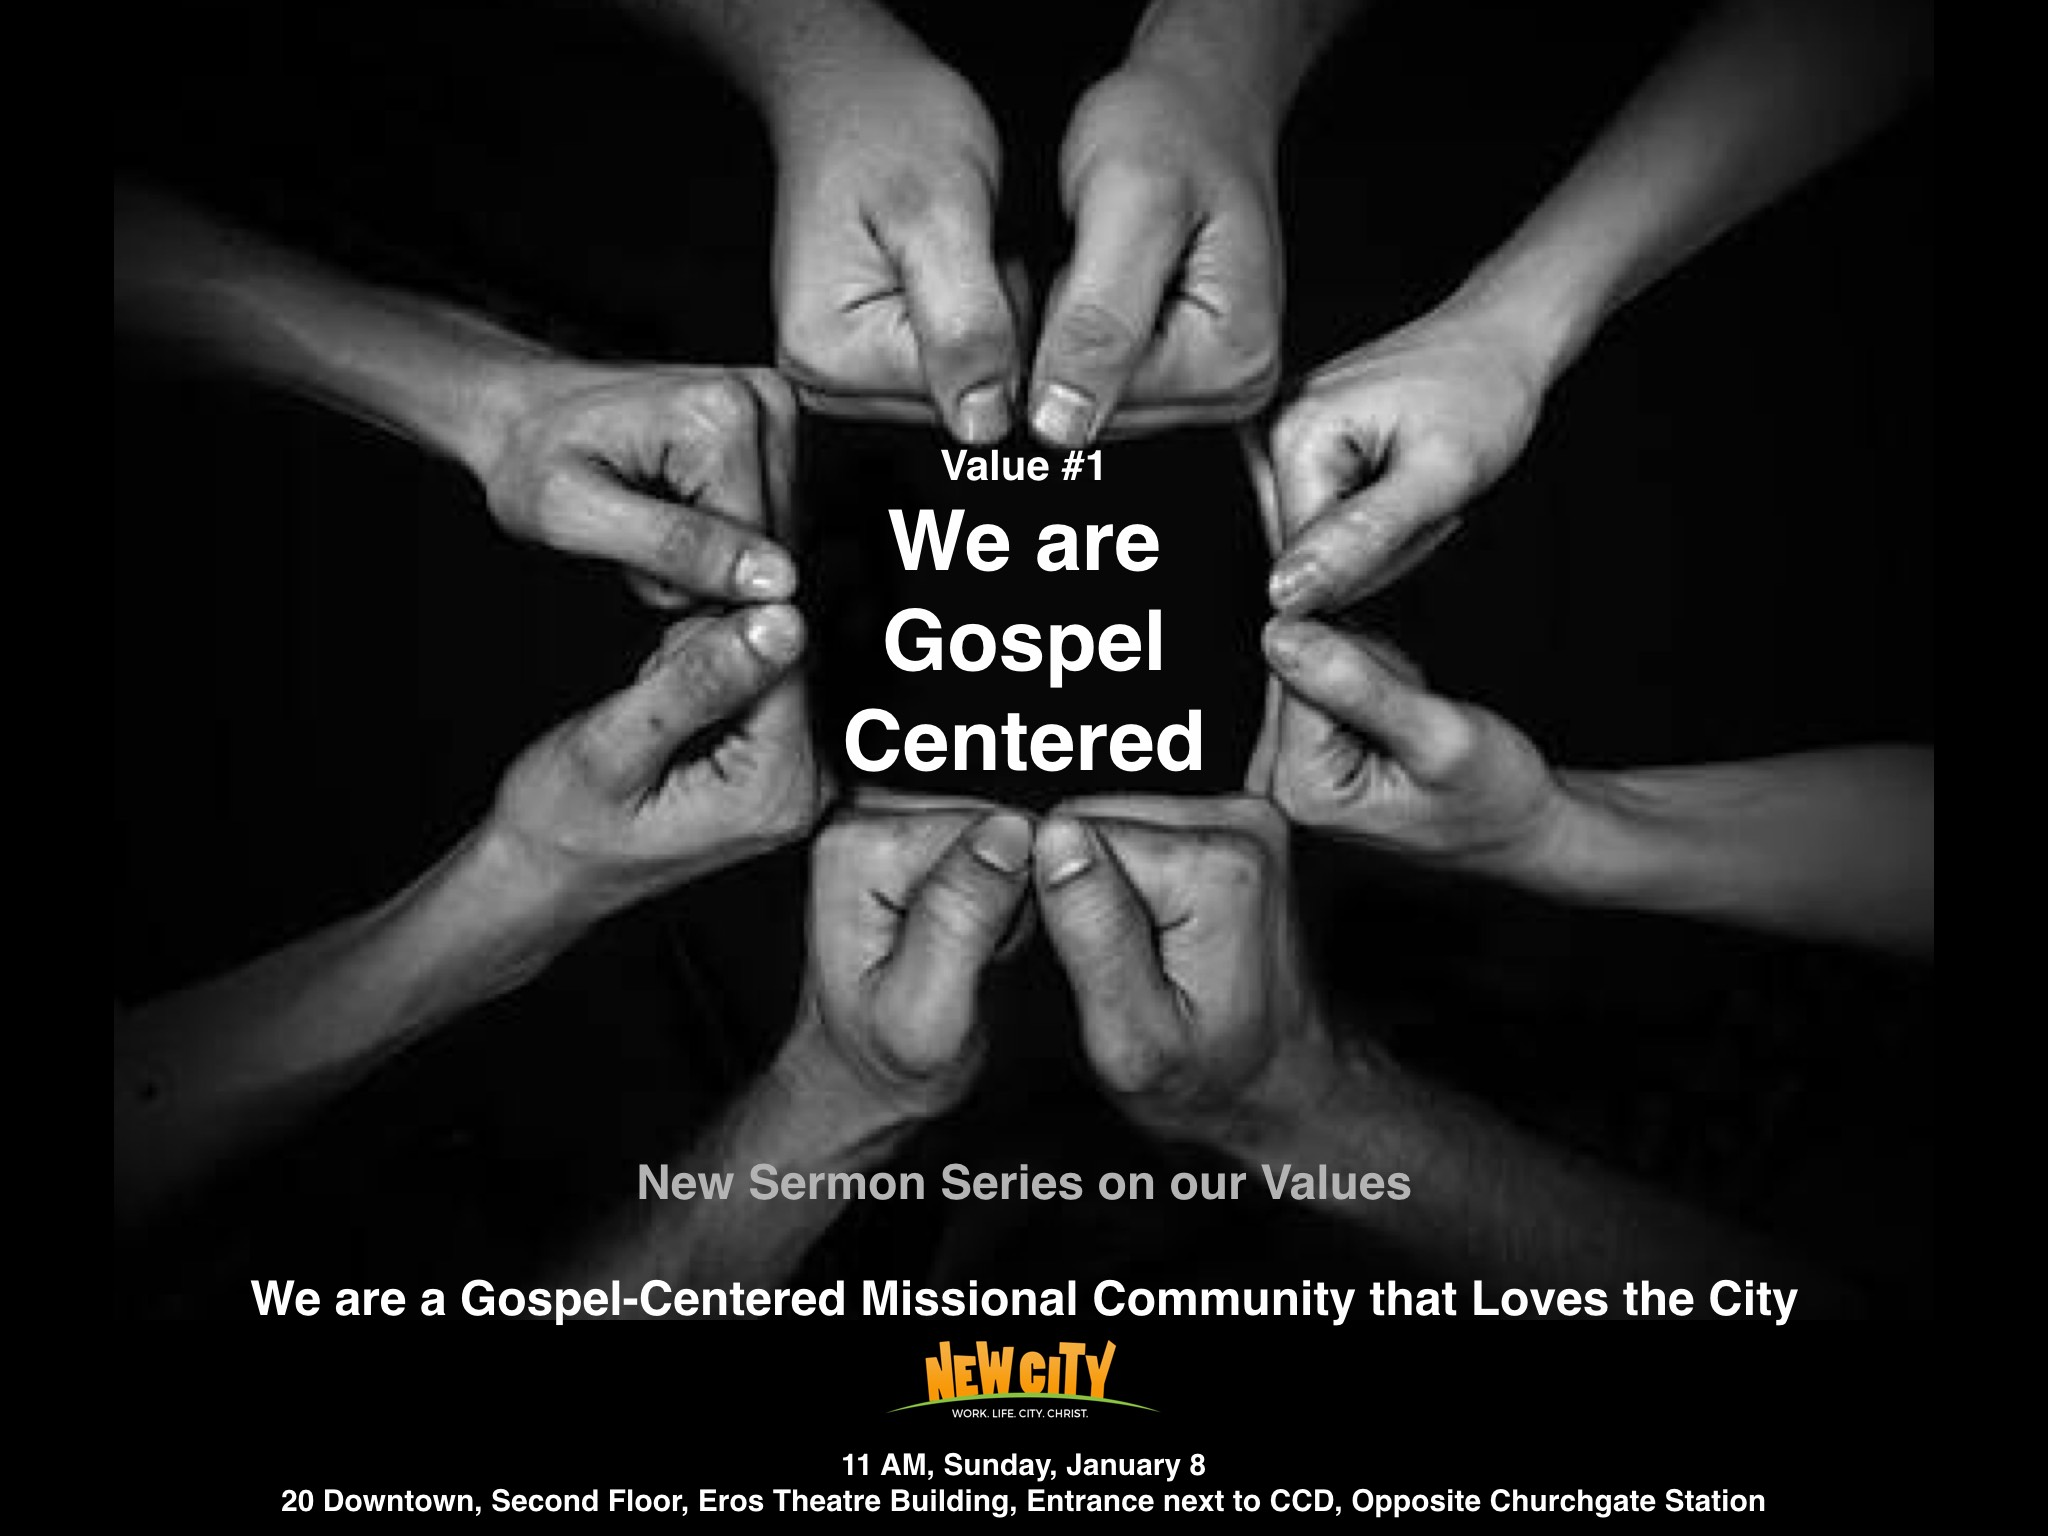 We are Gospel - Centered (Part 1) Image